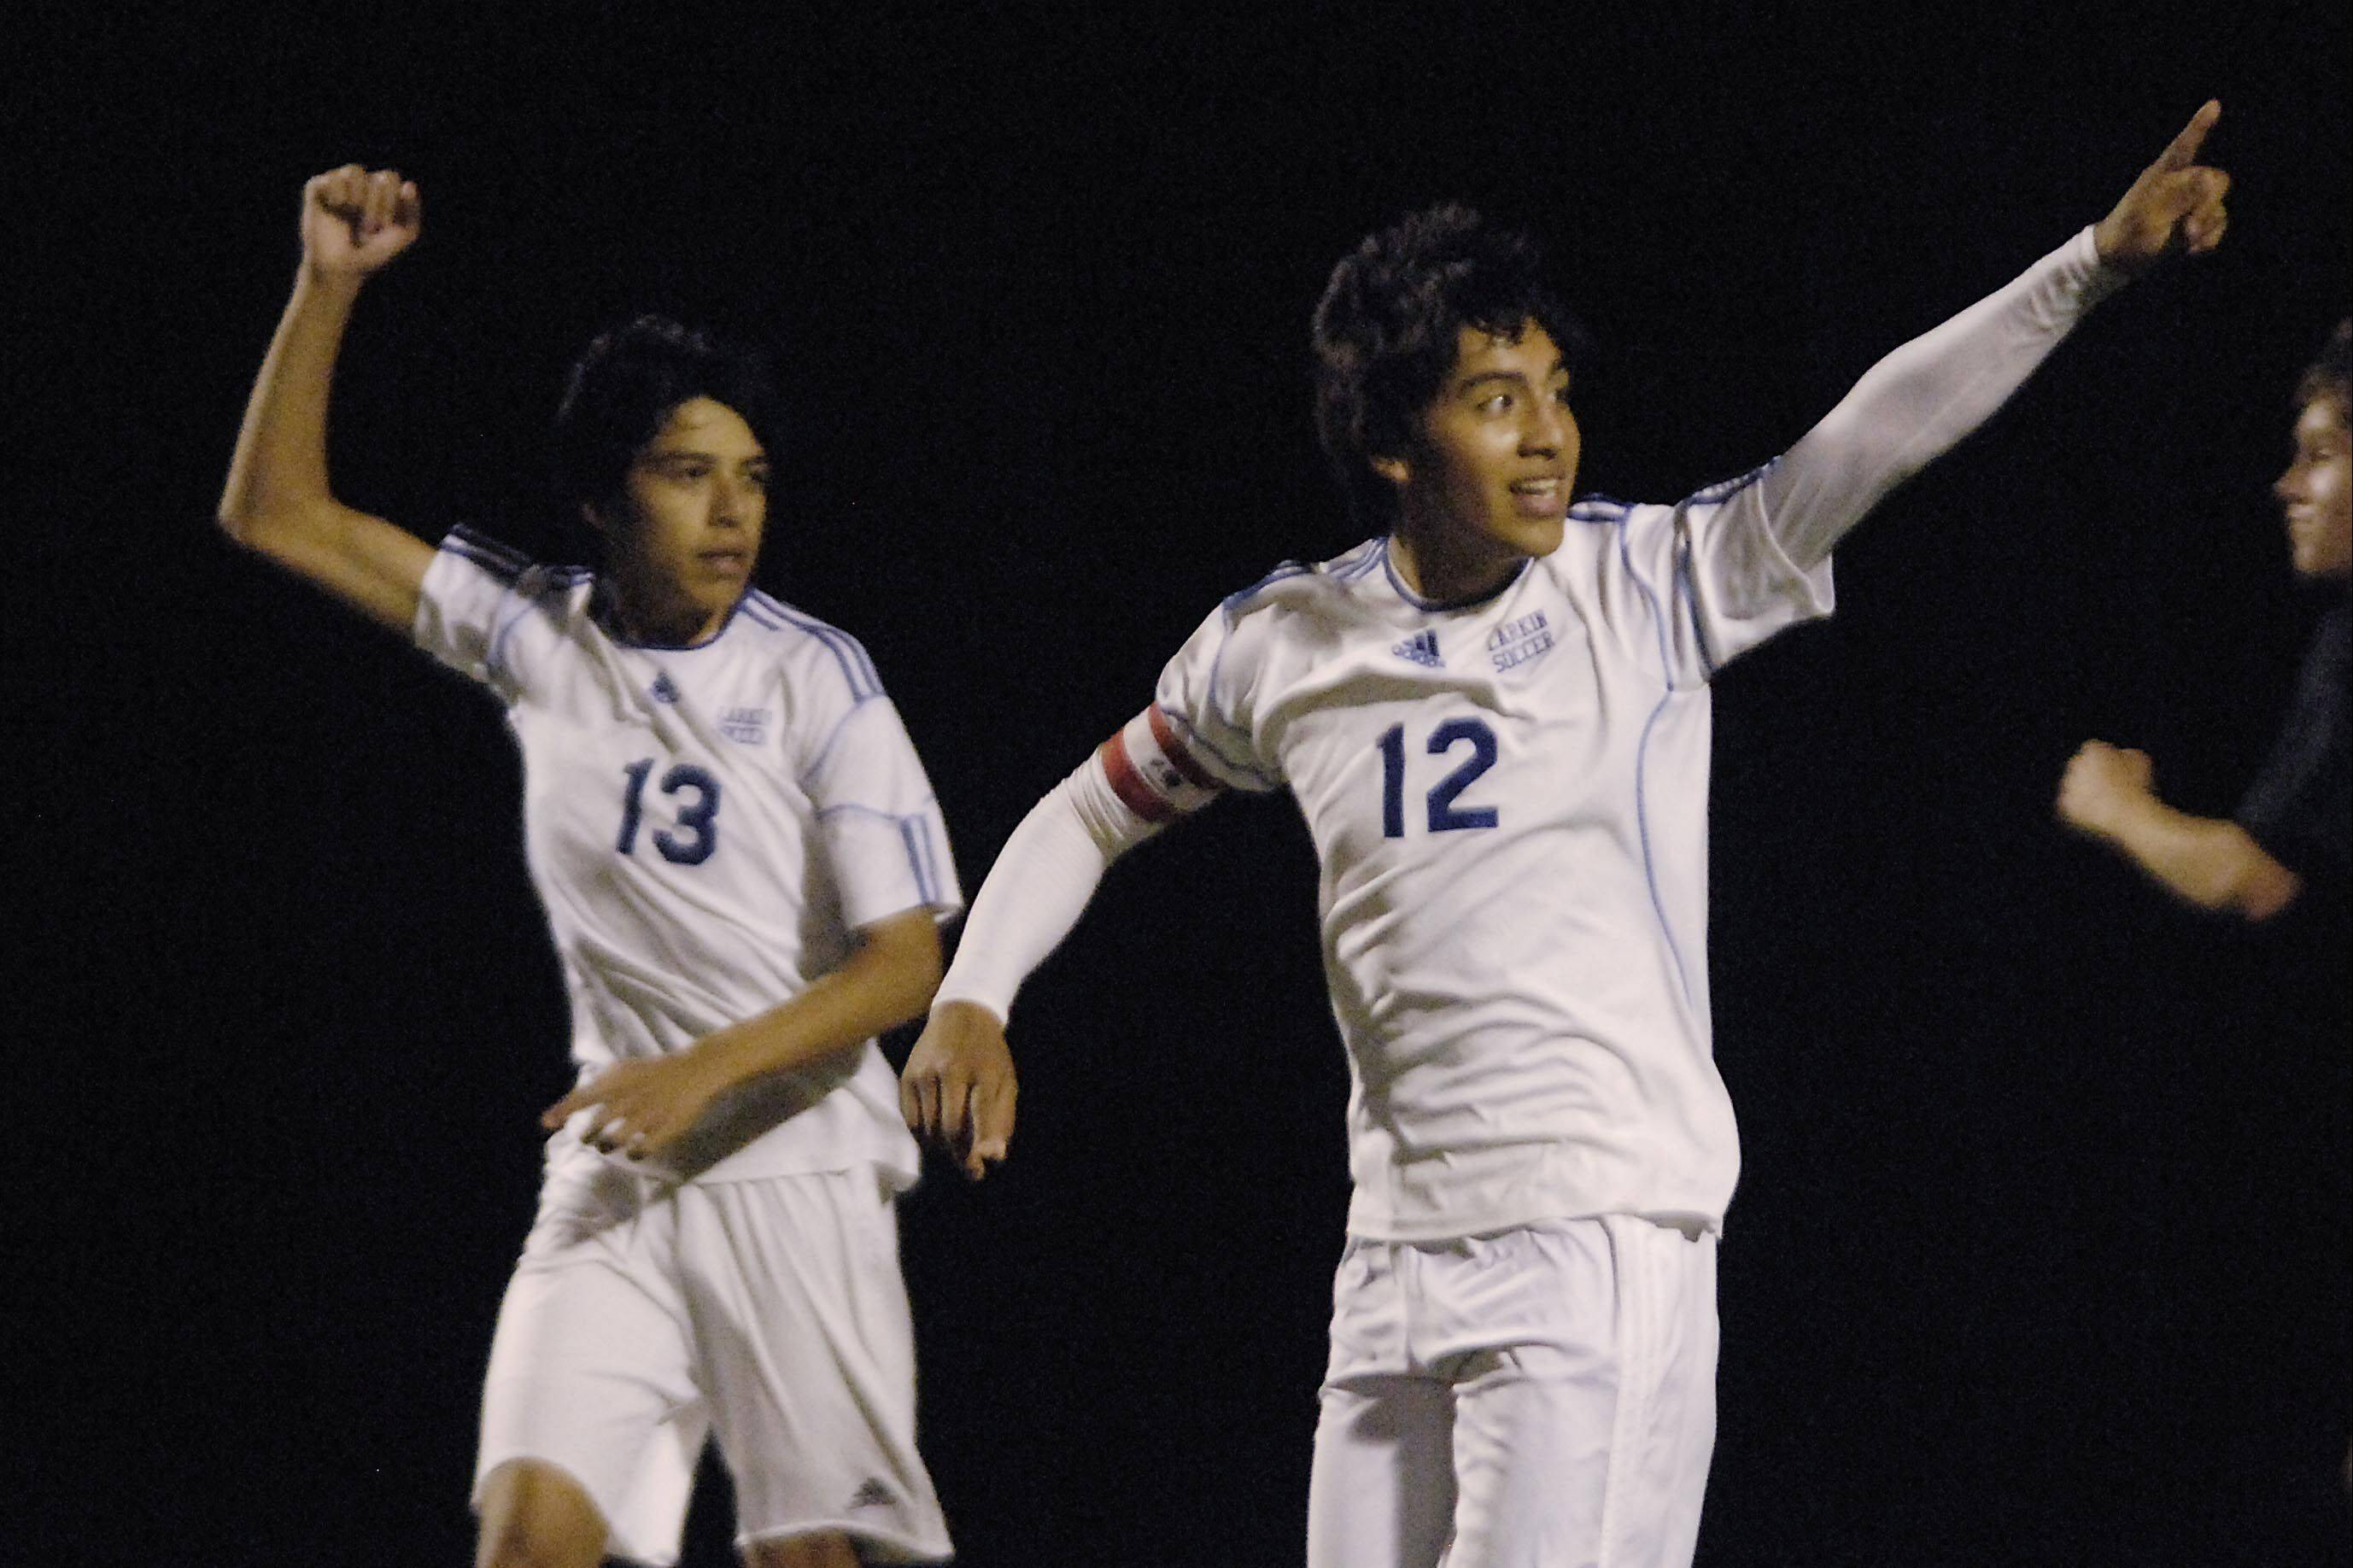 Larkin�s Hector Mendoza, left, and Tony Hernandez celebrate Mendoza�s first-half goal against York on Tuesday in the Schaumburg regional. Both players scored in the 3-1 Royals win.